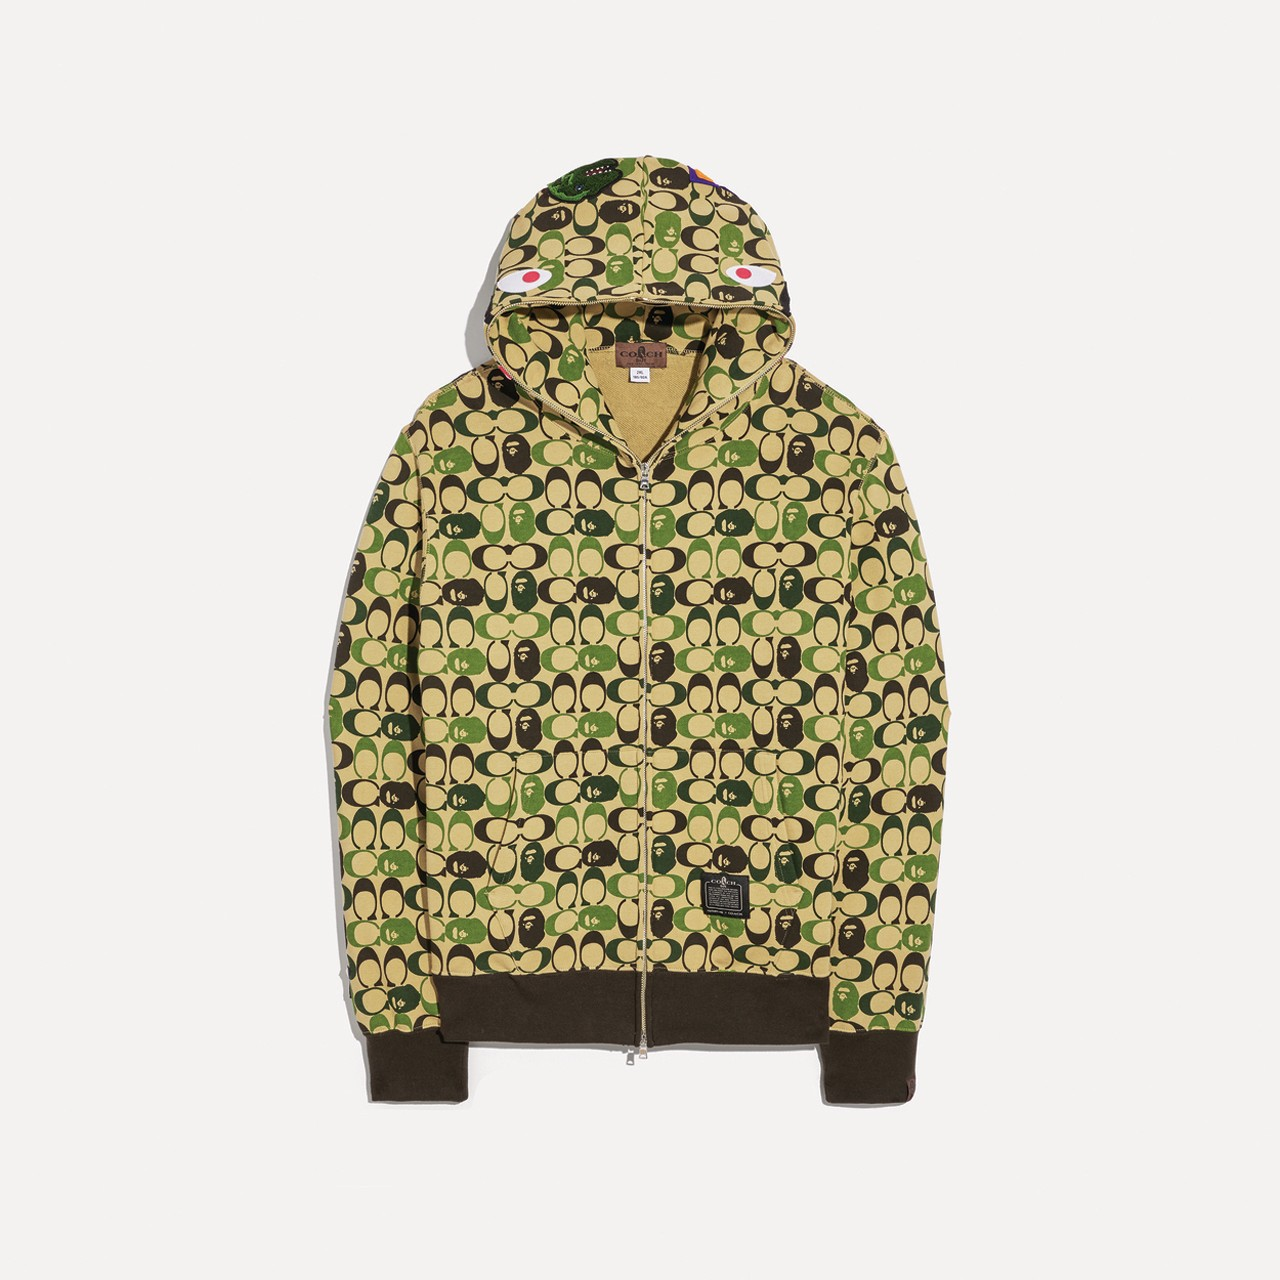 BAPE x Coach Collaboration Collection Lookbook Collaboration Puffer Jacket Crossbody Bag